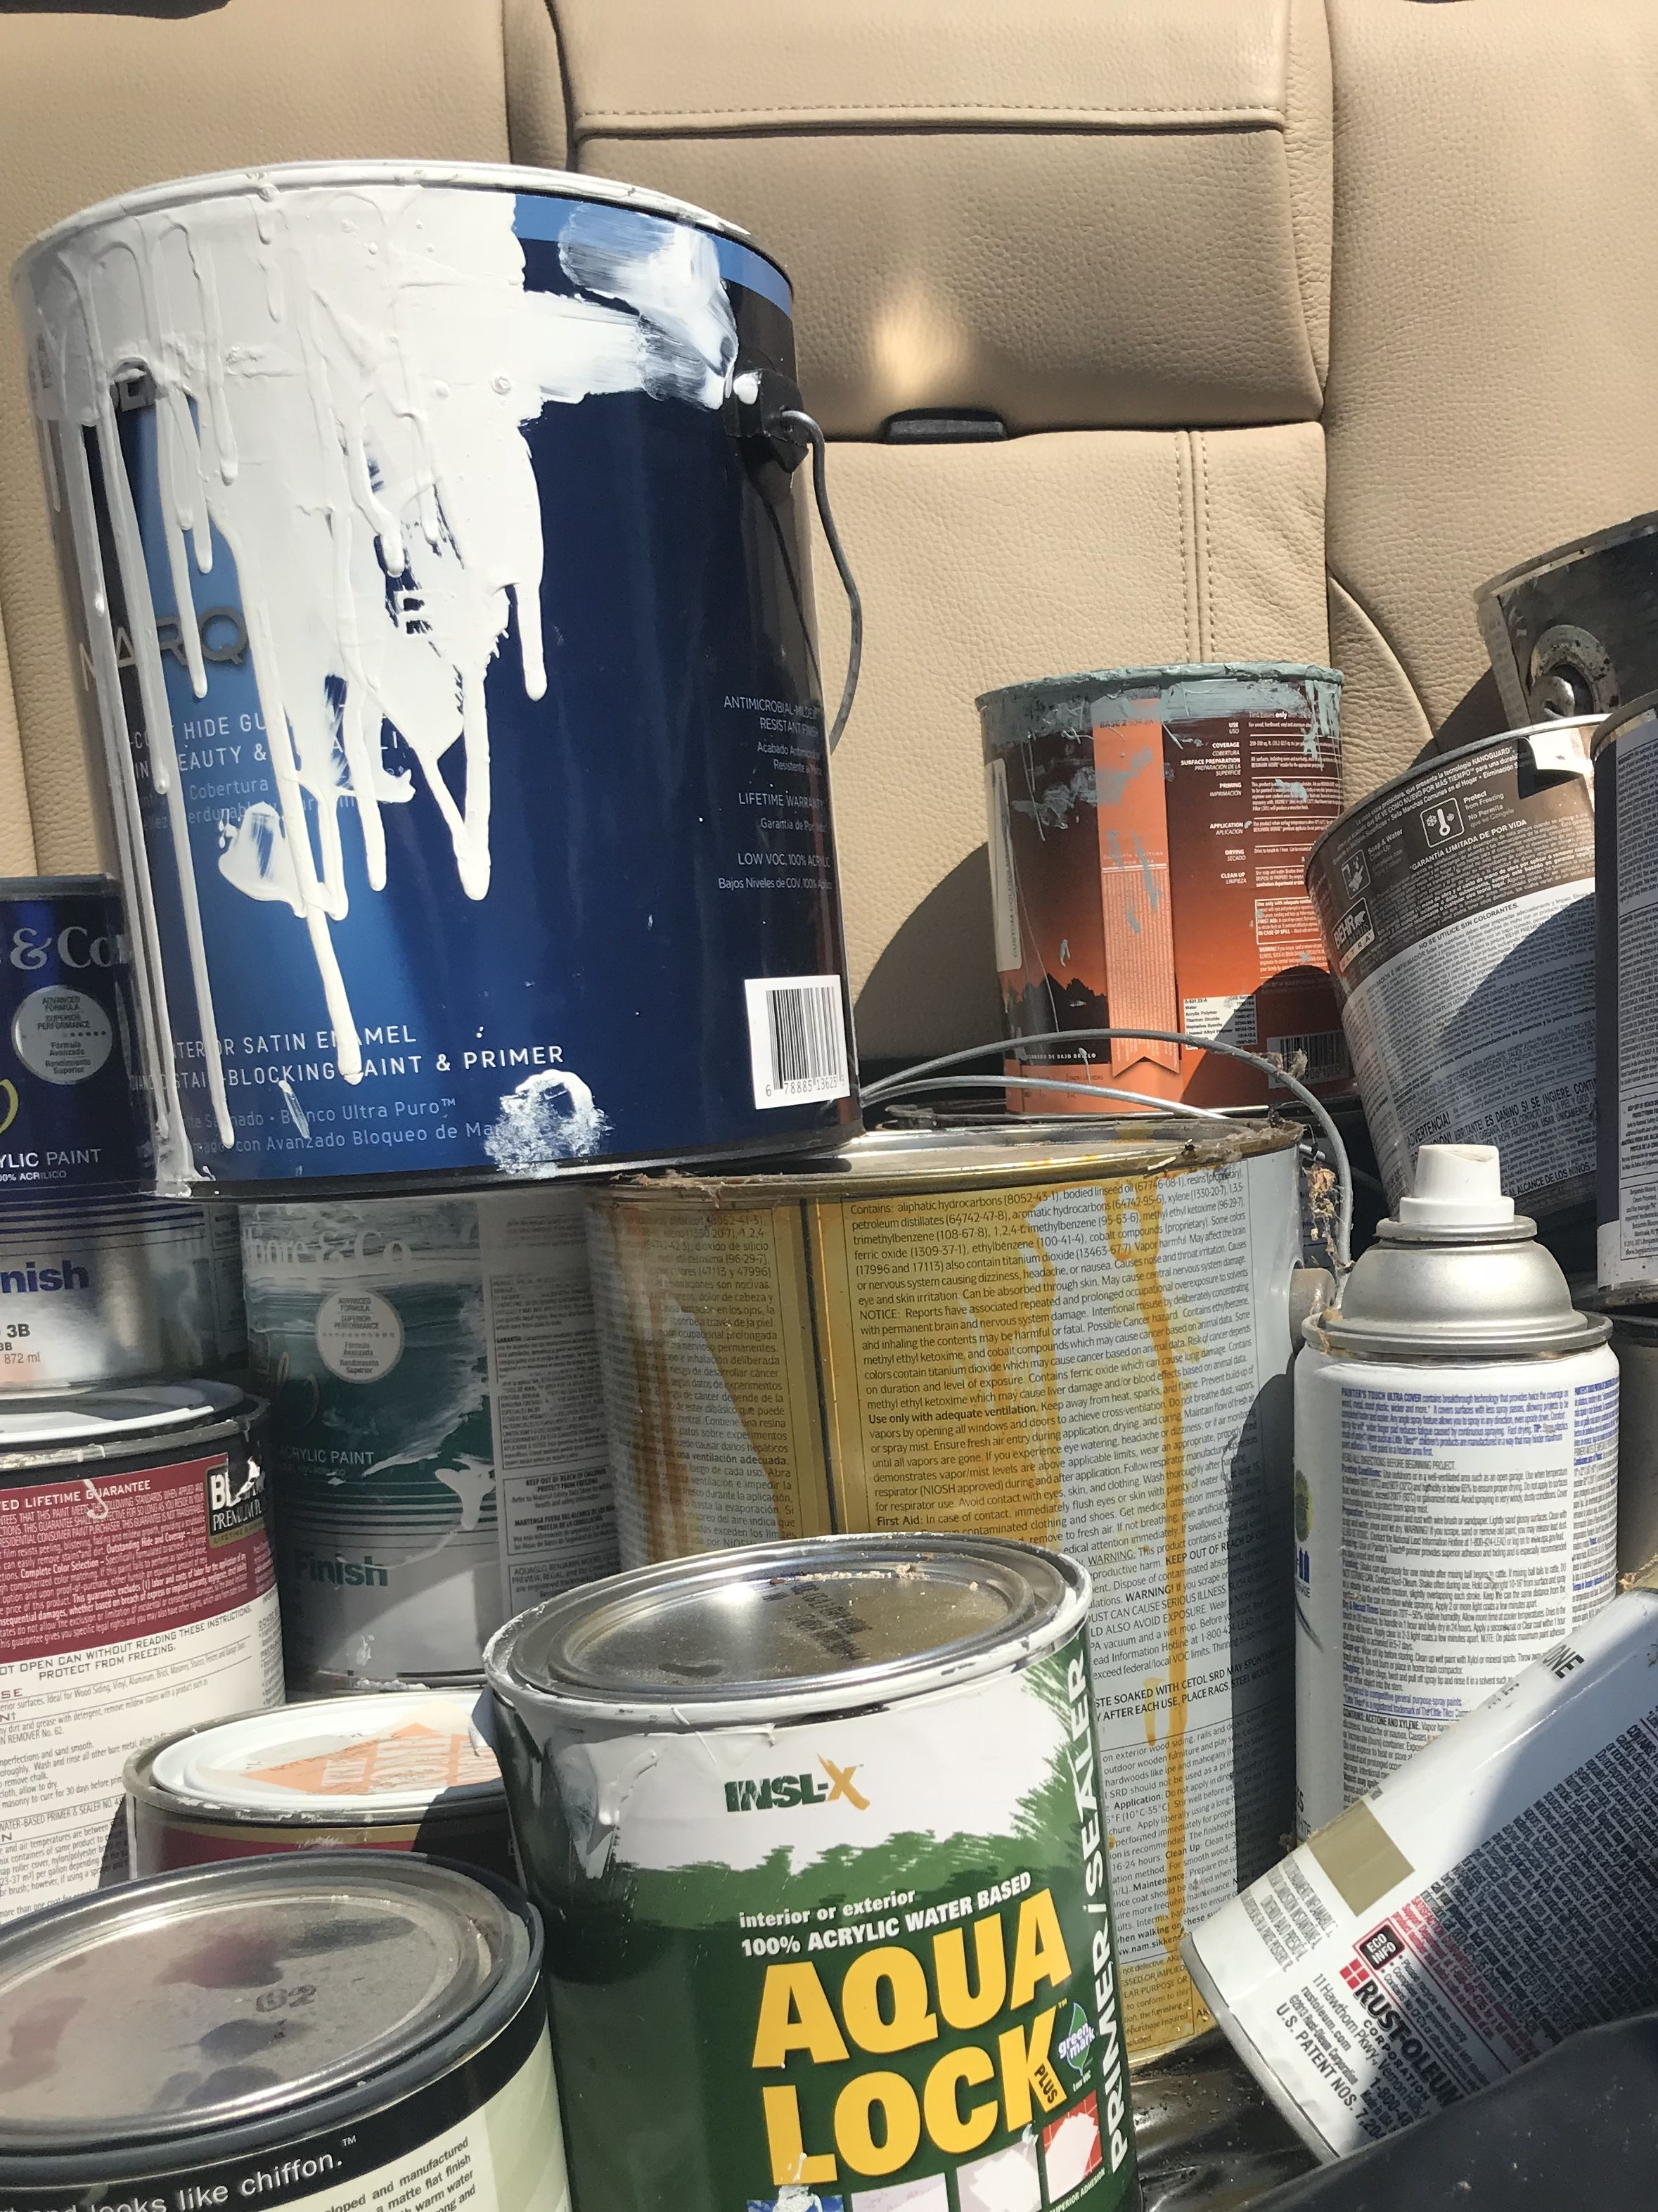 So Where Can You Take Your Old Paint Cans To Dispose Of Them If